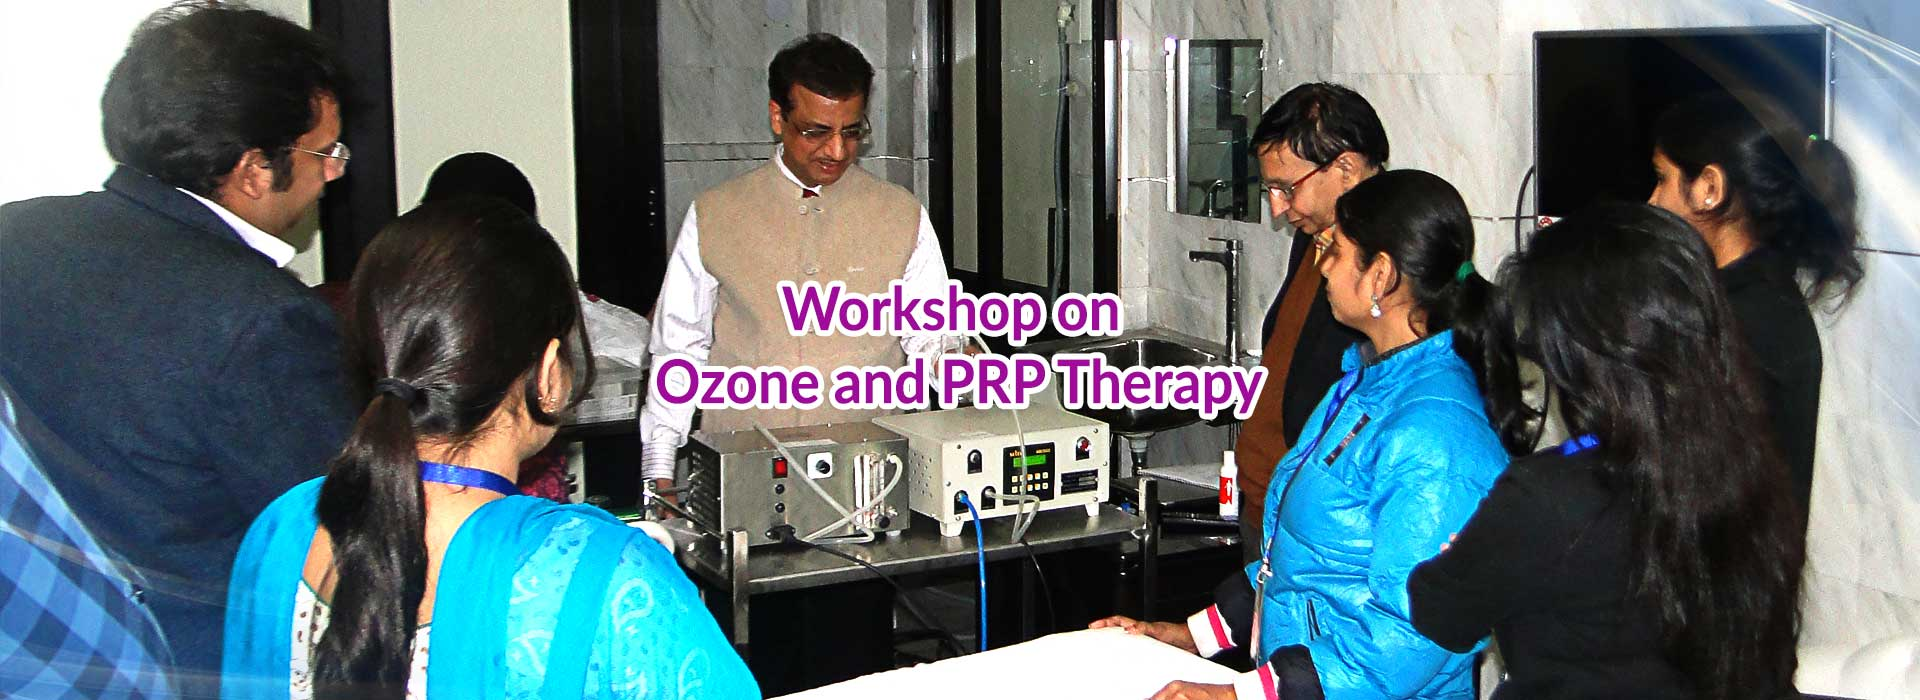 Workshop on Ozone and PRP Therapy